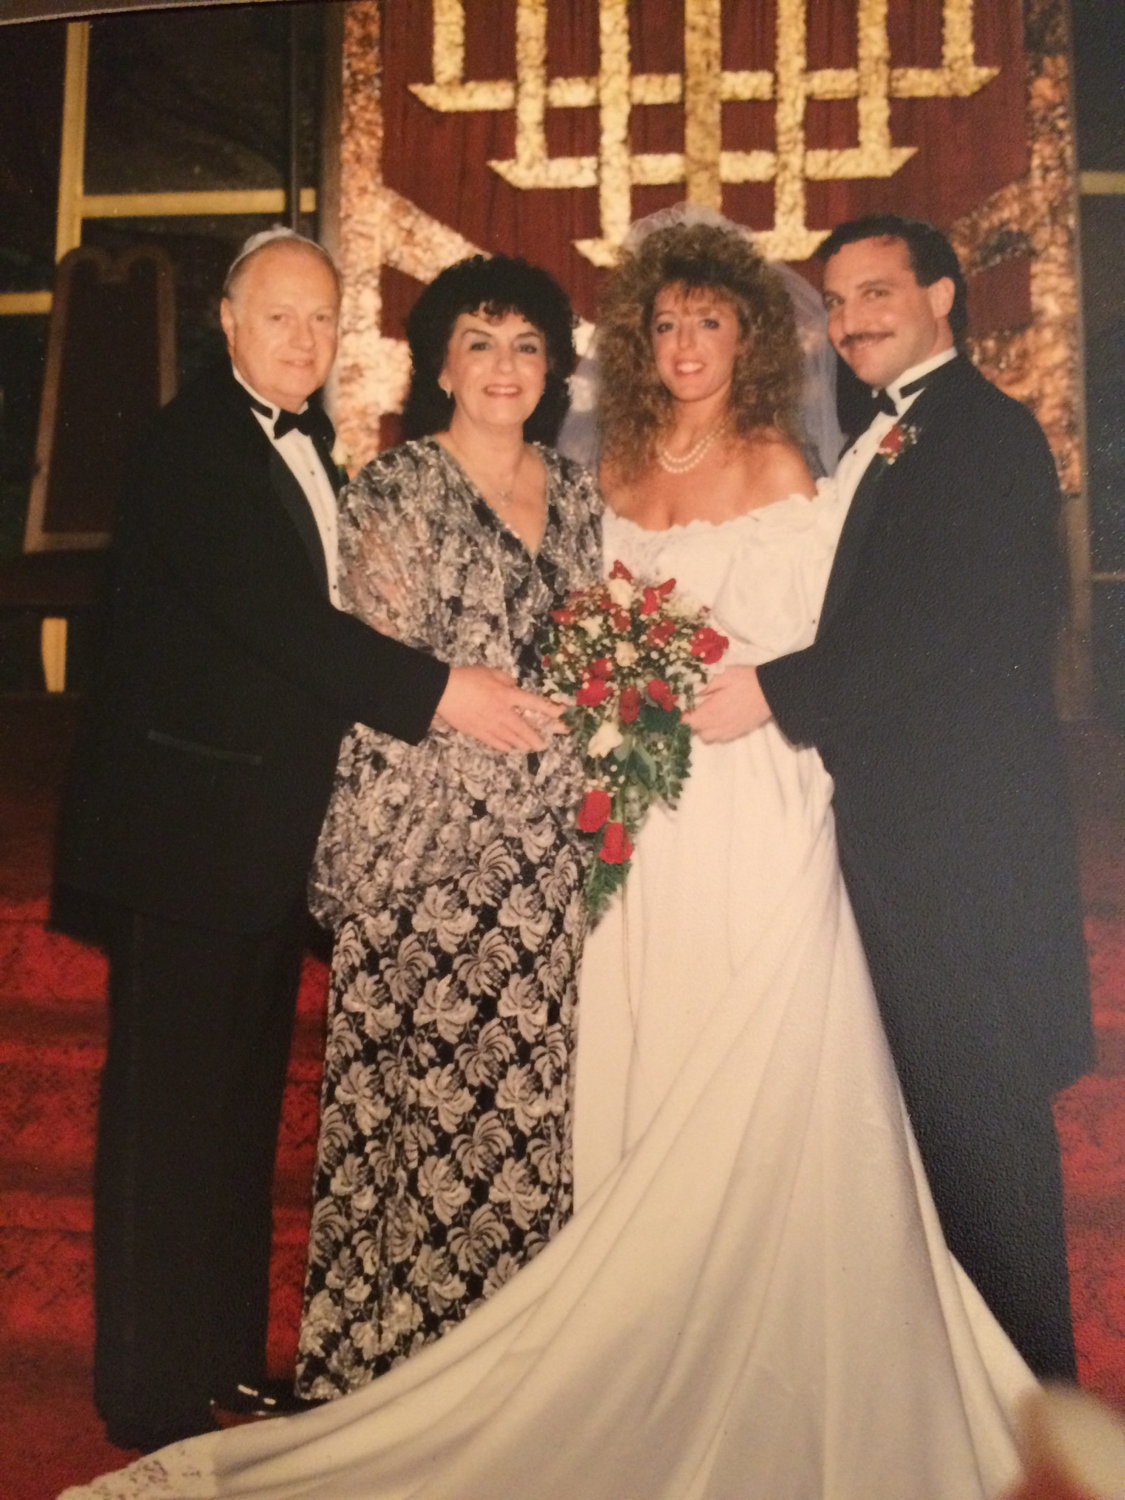 Bonni and Walter on their wedding day with Bonni's parents Dr. Howard Gershenfeld and Shirley Gershenfield.